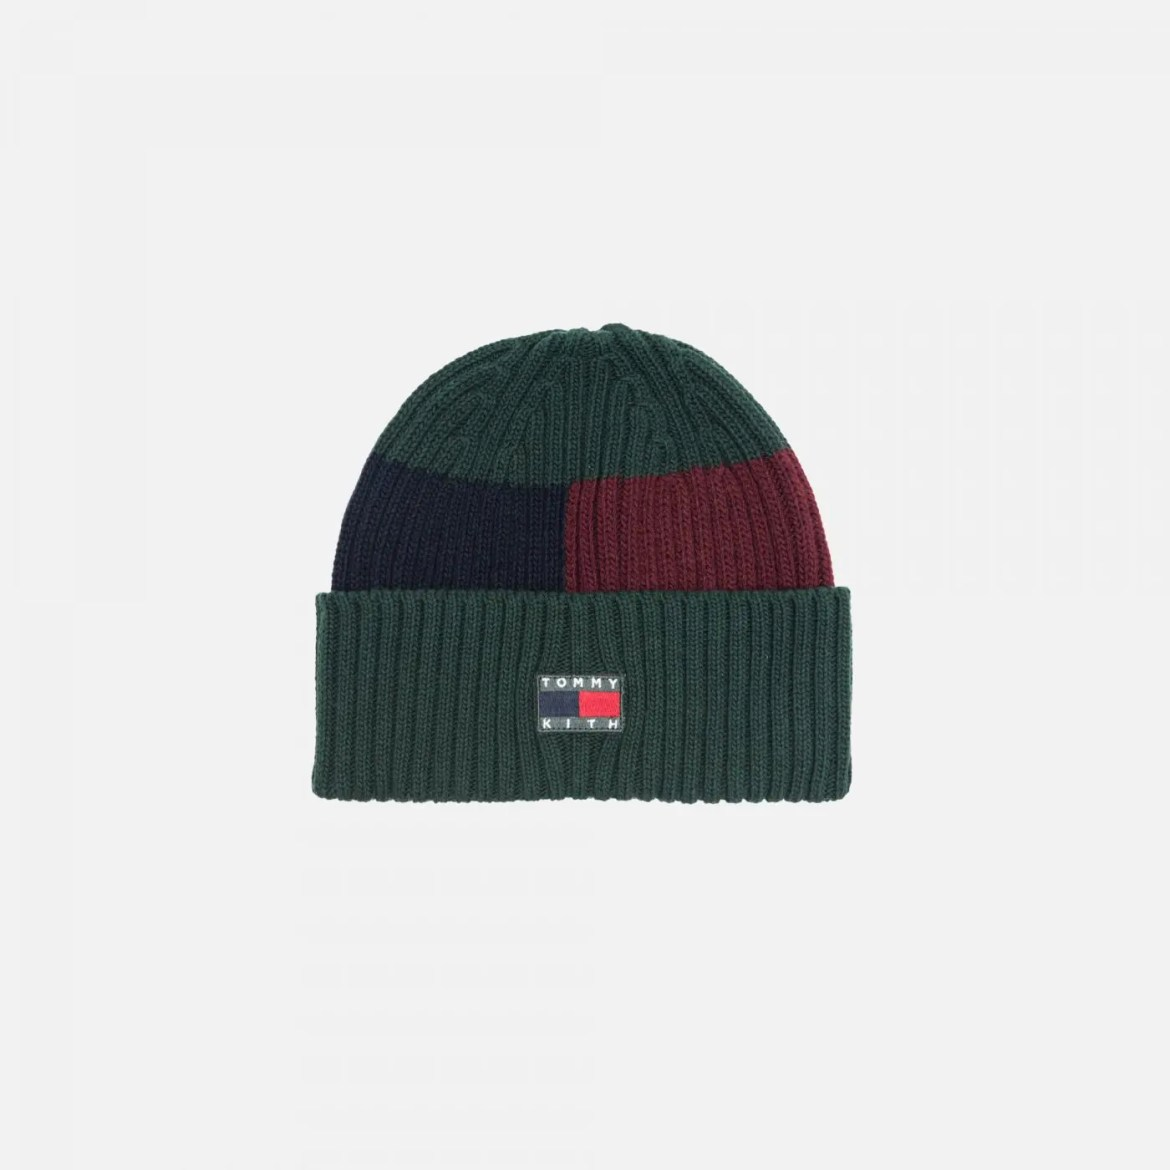 KITH X TOMMY HILFIGER FLAG BLOCK BEANIE FOREST / BURGUNDY / NAVY